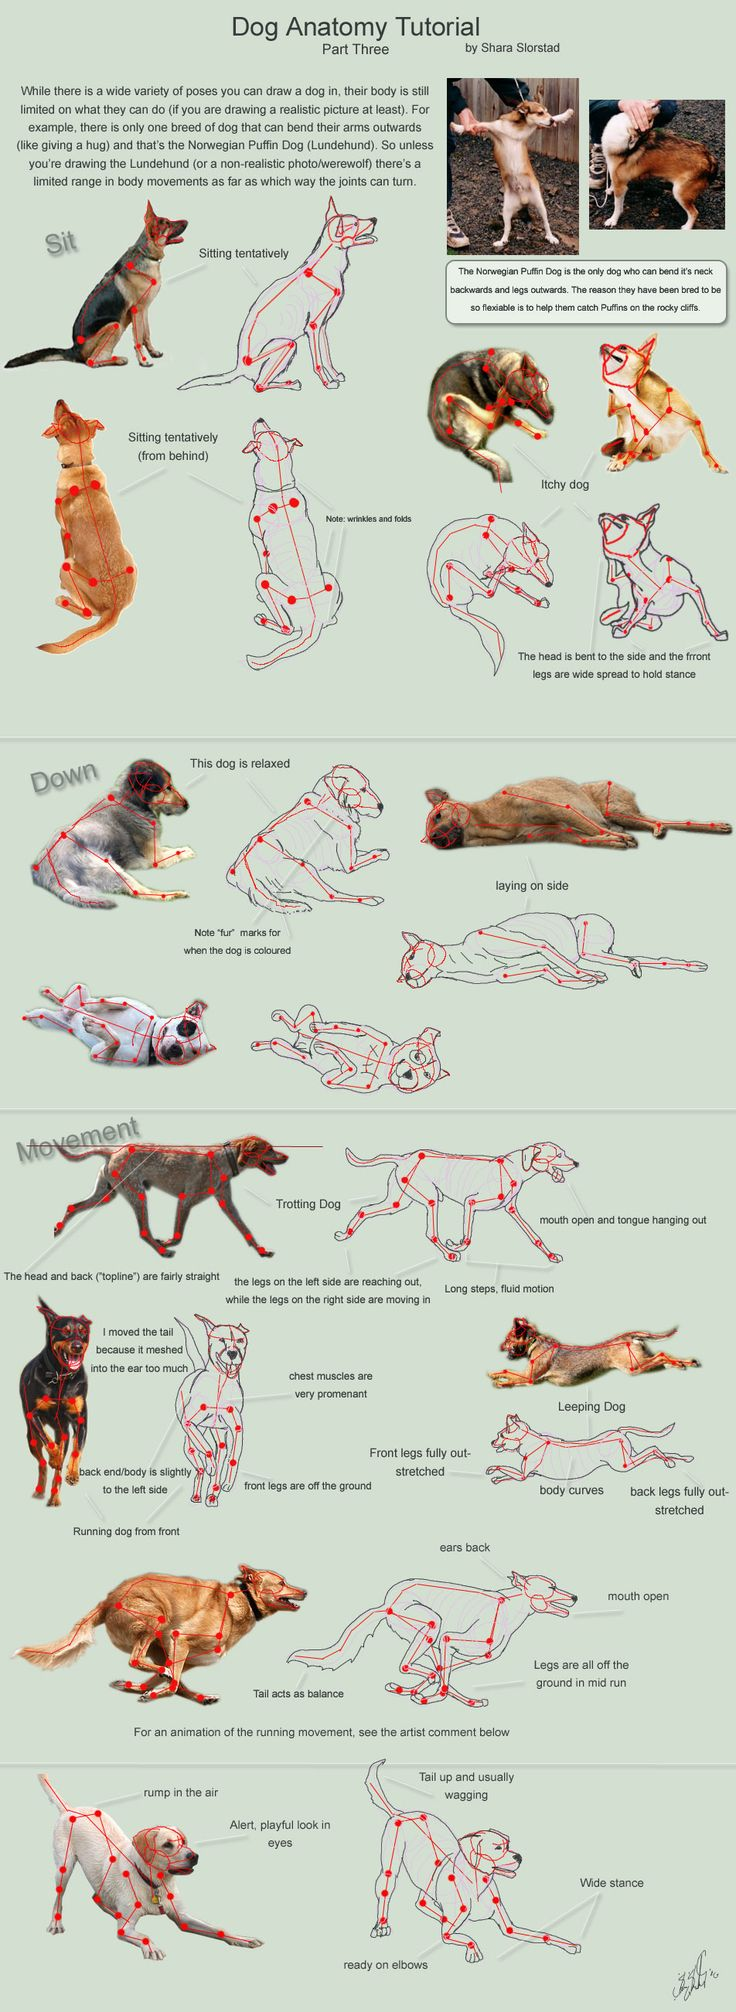 Dog Anatomy Tutorial 3 by SleepingDeadGirl.deviantart.com ✤ || CHARACTER DESIGN REFERENCES |